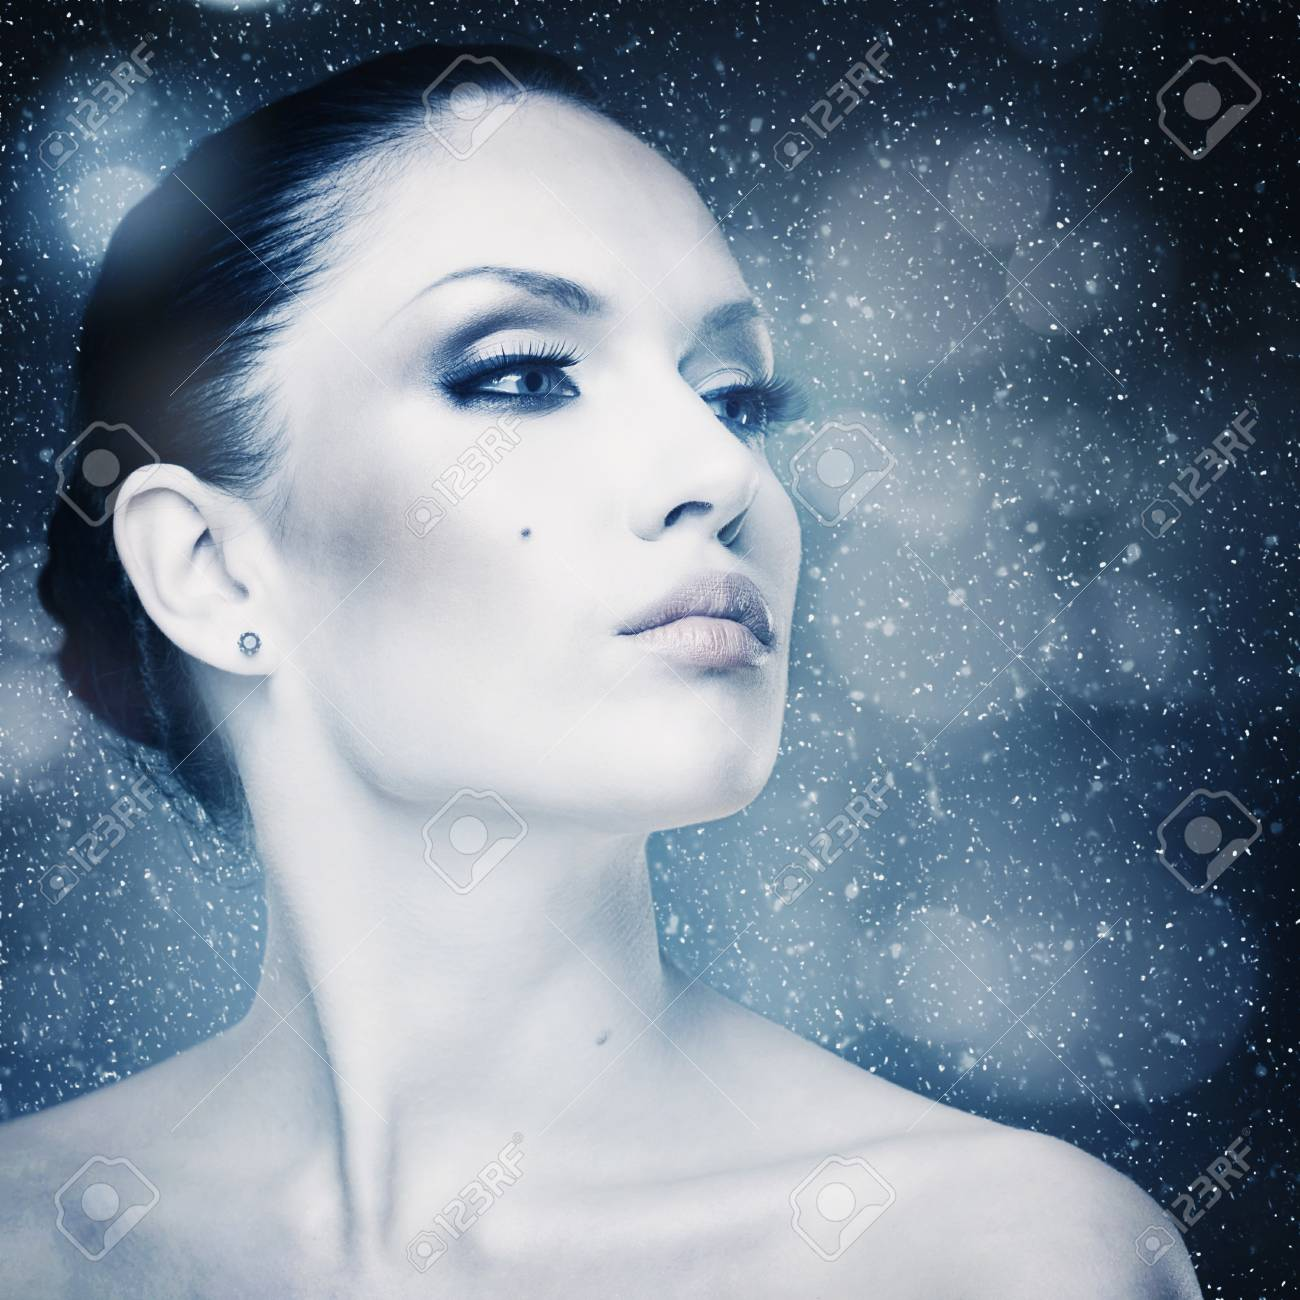 Winter freshness, abstract female portrait with falling snow as background Stock Photo - 24925429